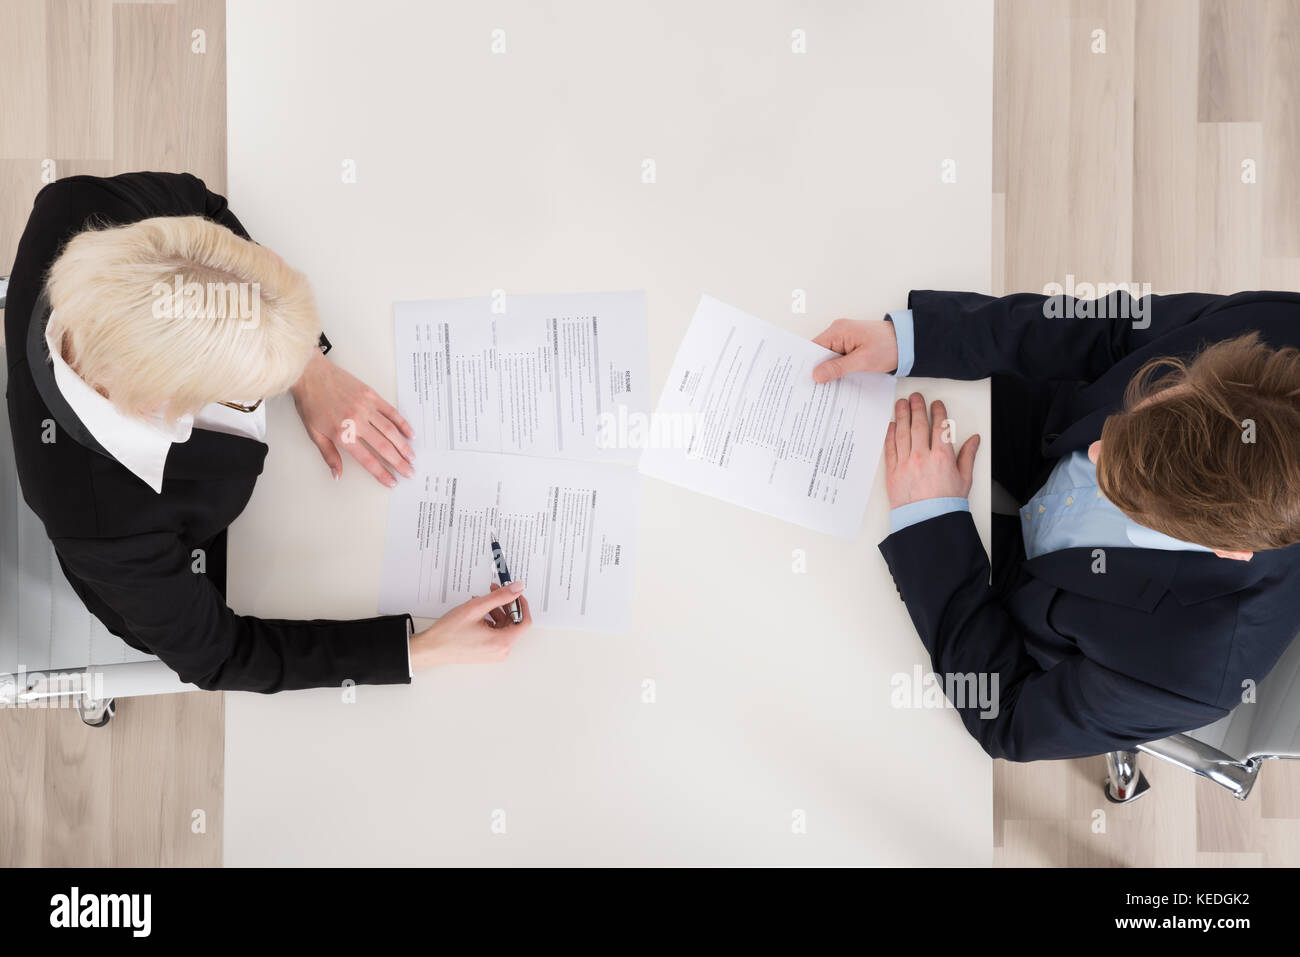 High Angle View Job Interview At Desk - Stock Image